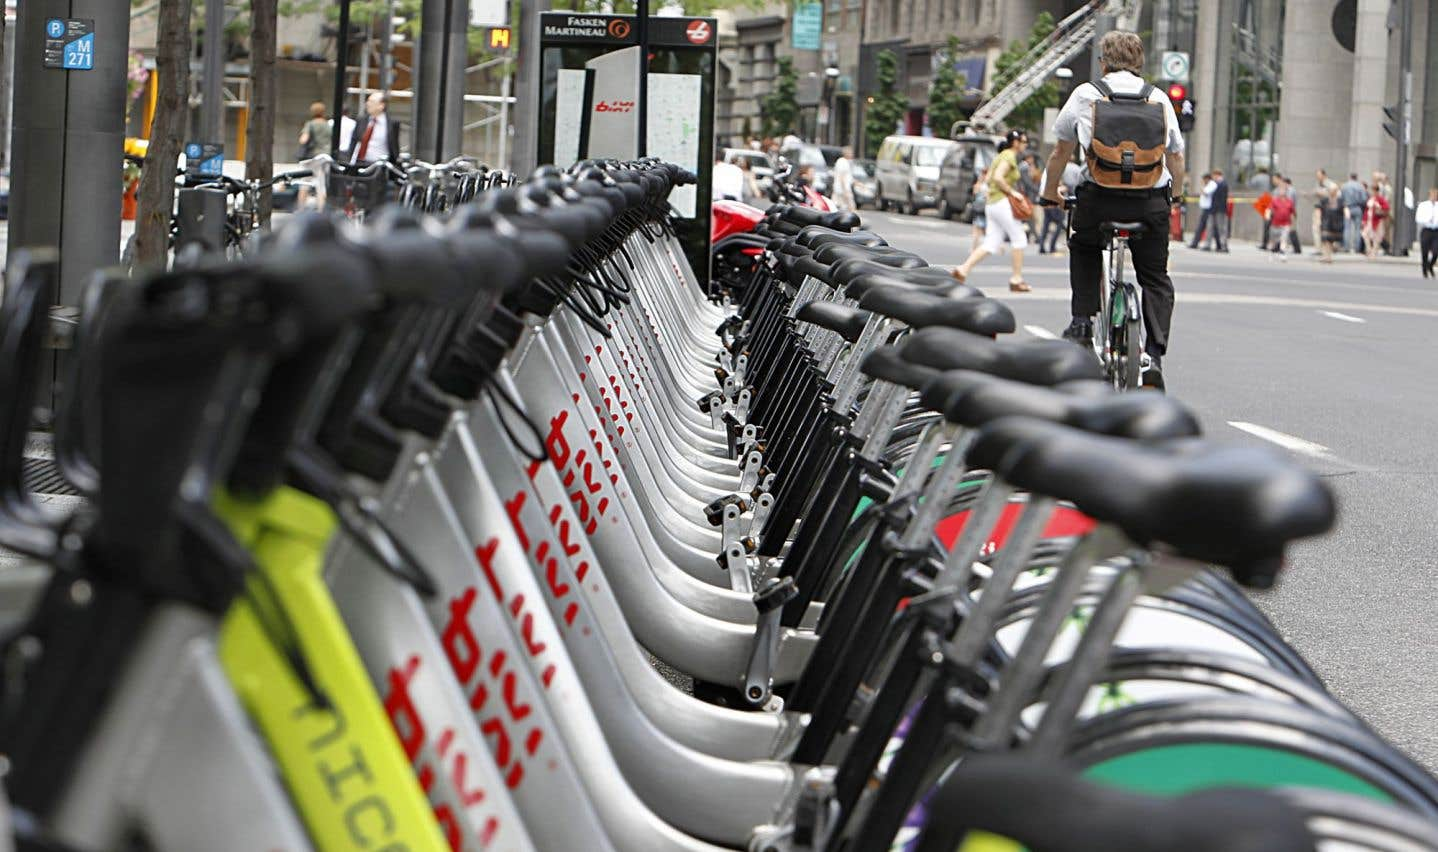 Bixi prendra de l'expansion